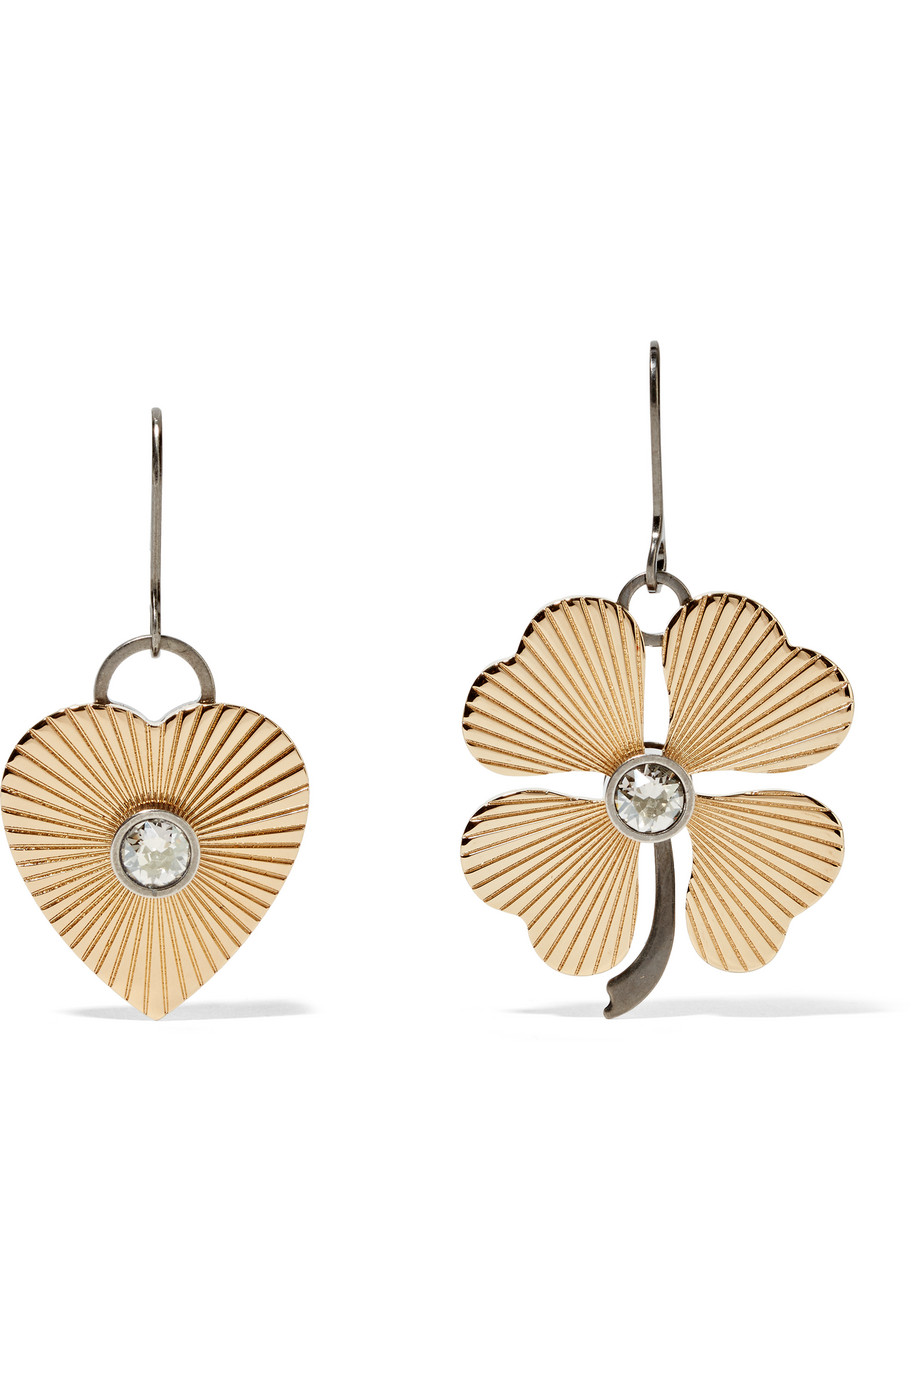 Lanvin Gold-Tone Swarovski Crystal Earrings, Women's